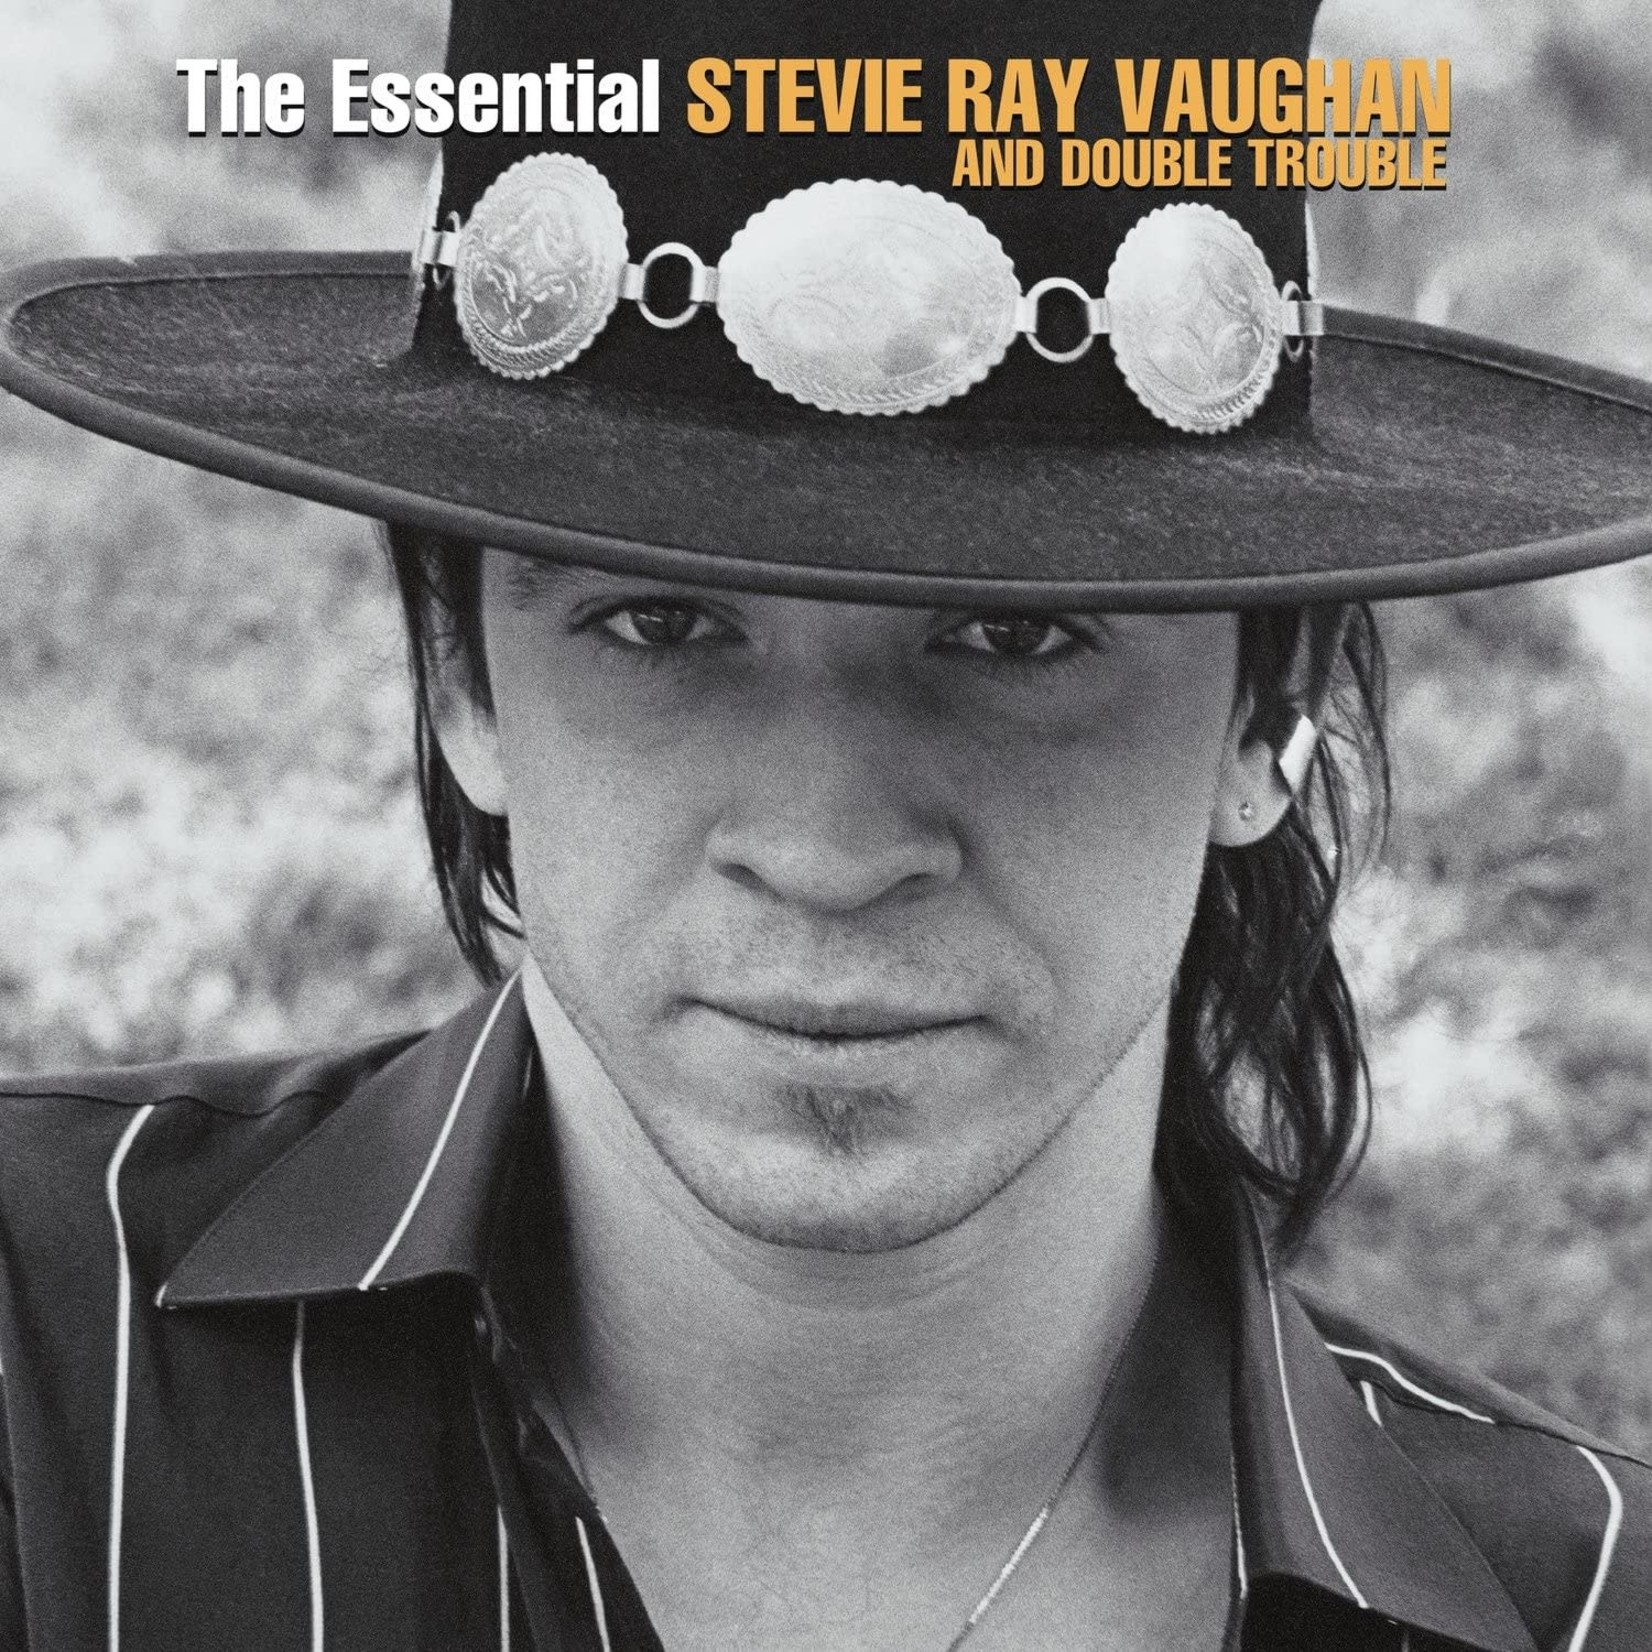 [New] Vaughan, Stevie Ray: The Essential Stevie Ray Vaughan And Double Trouble (2LP)